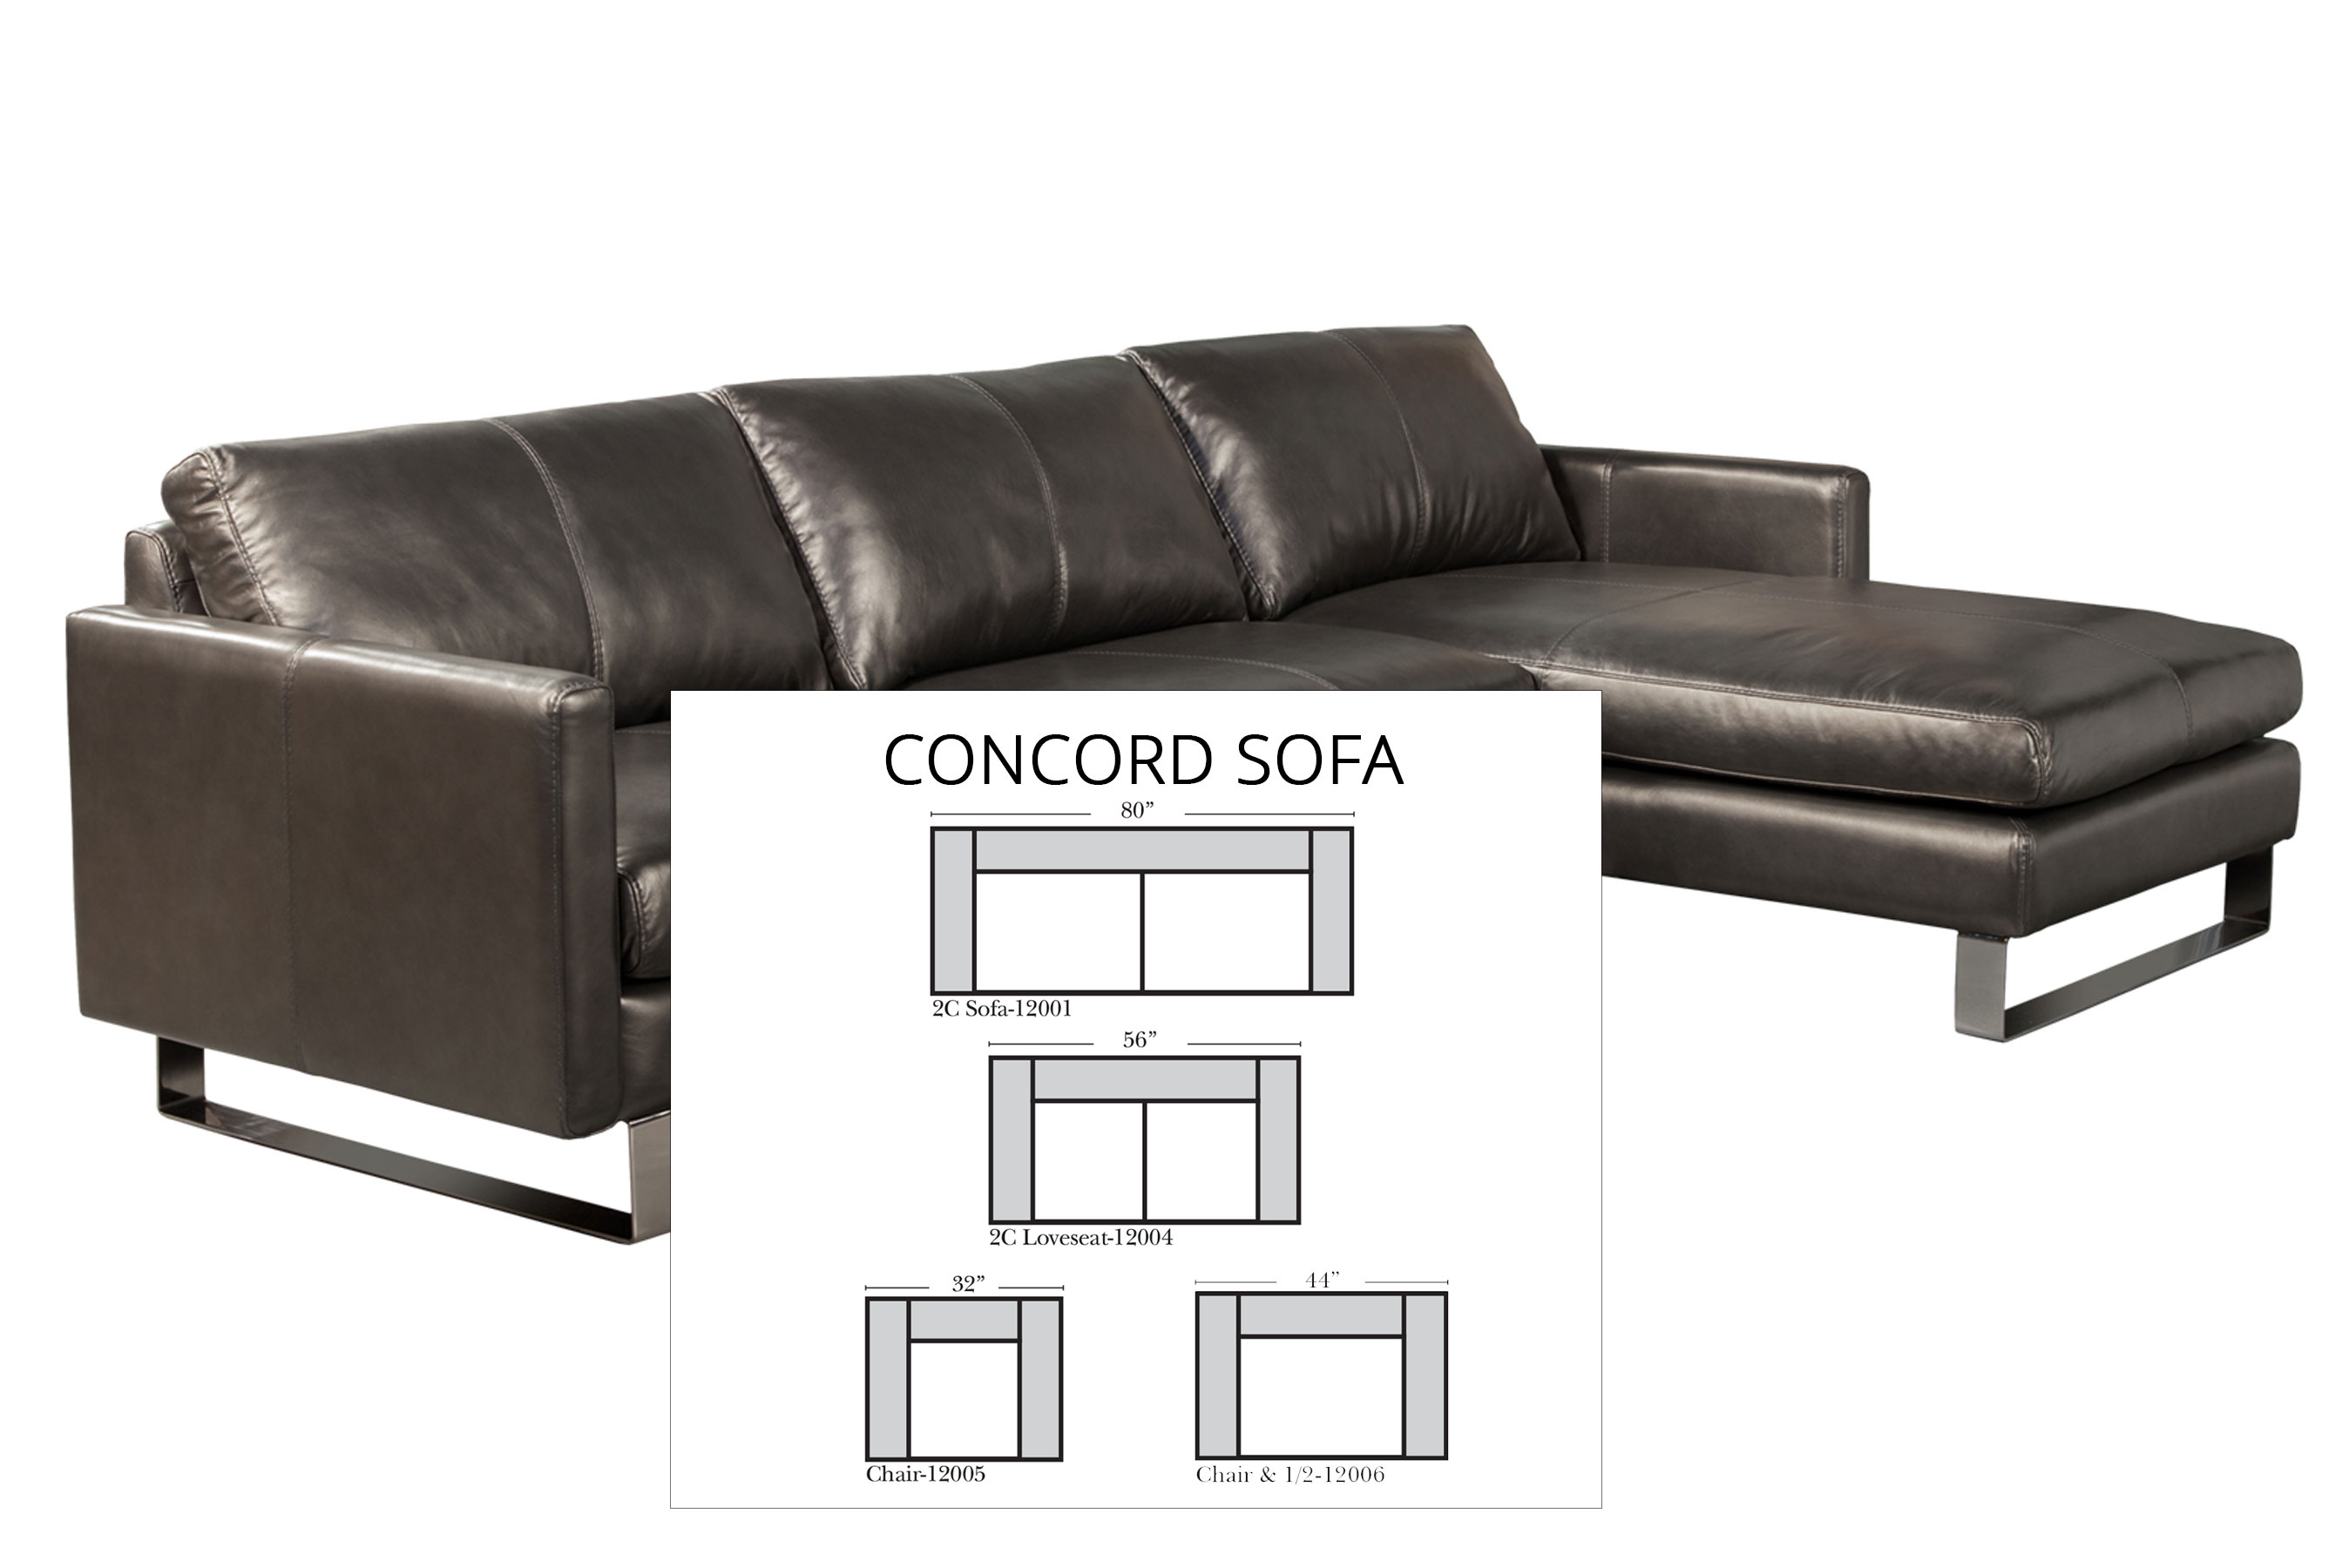 Swell Concord 80 Sofa All Leather Sofas And Sectionals Ocoug Best Dining Table And Chair Ideas Images Ocougorg